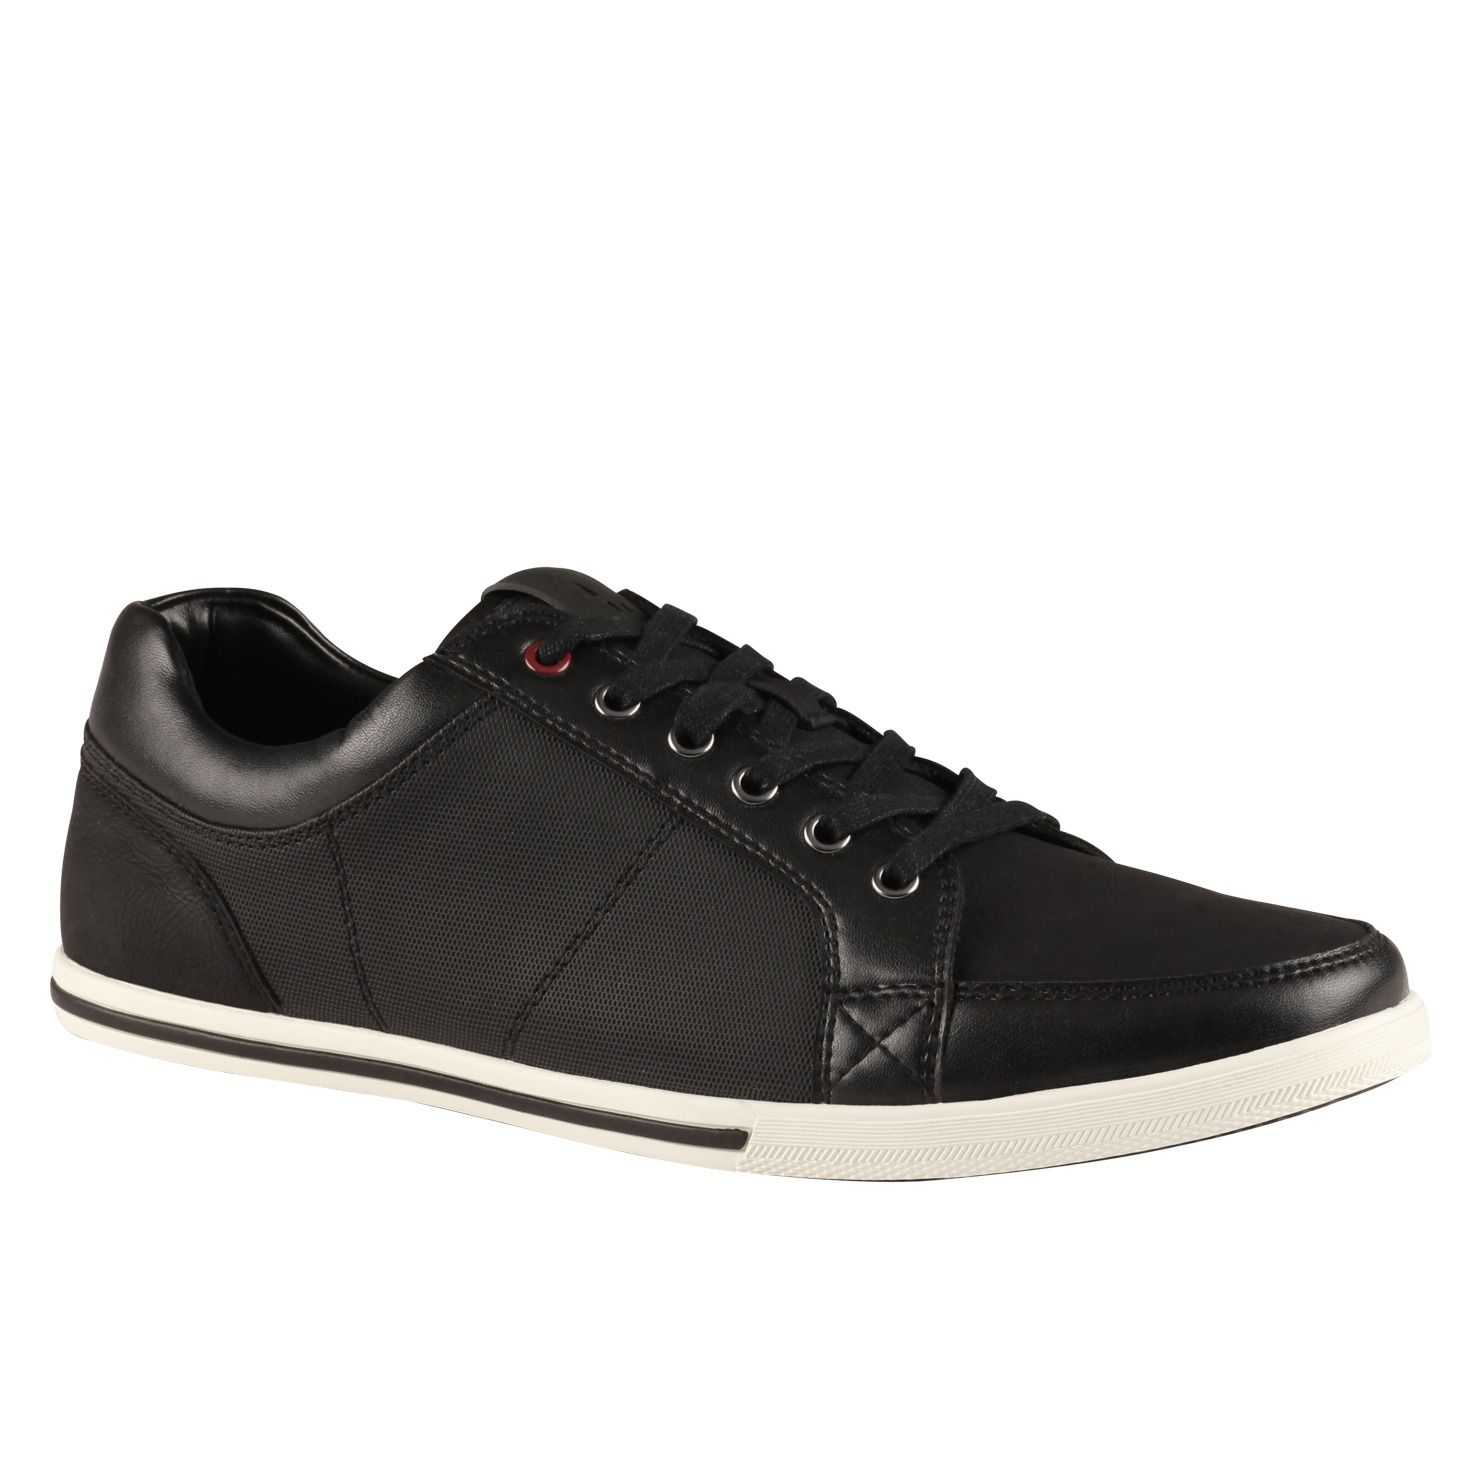 JAGGER - men's sneakers shoes for sale at ALDO Shoes.